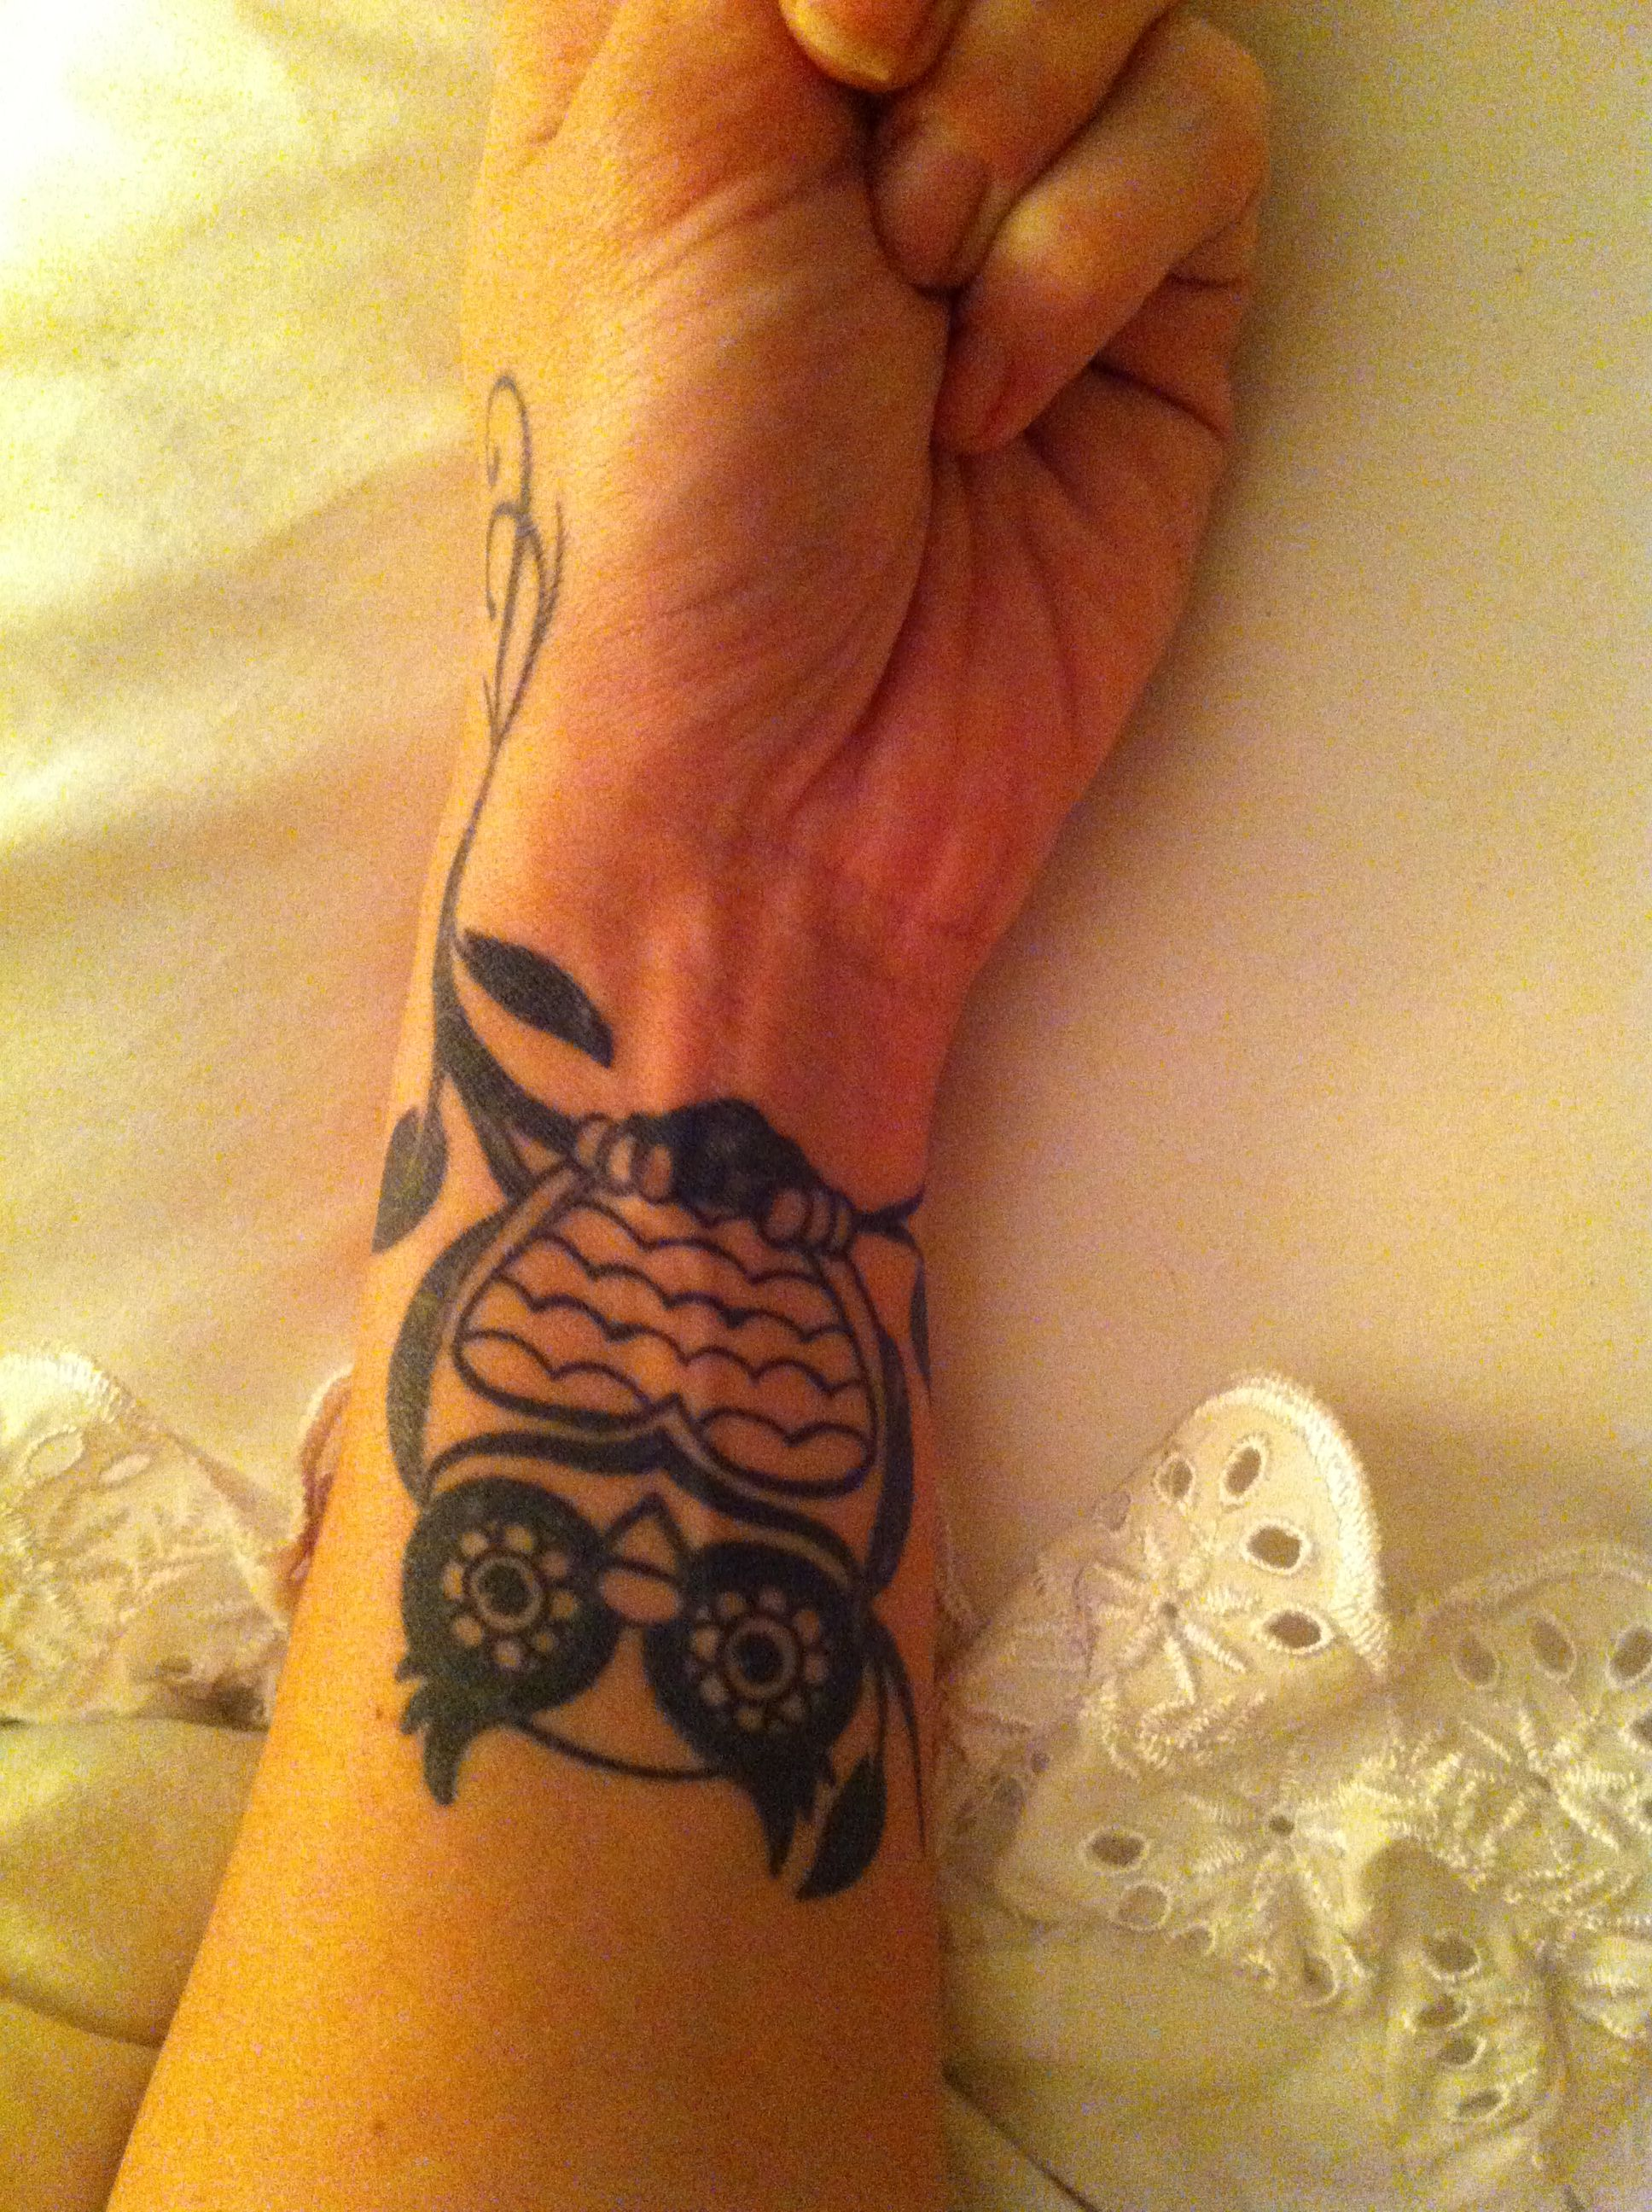 Owl wrist tattoo first tattoo ideas pinterest wrist tattoo